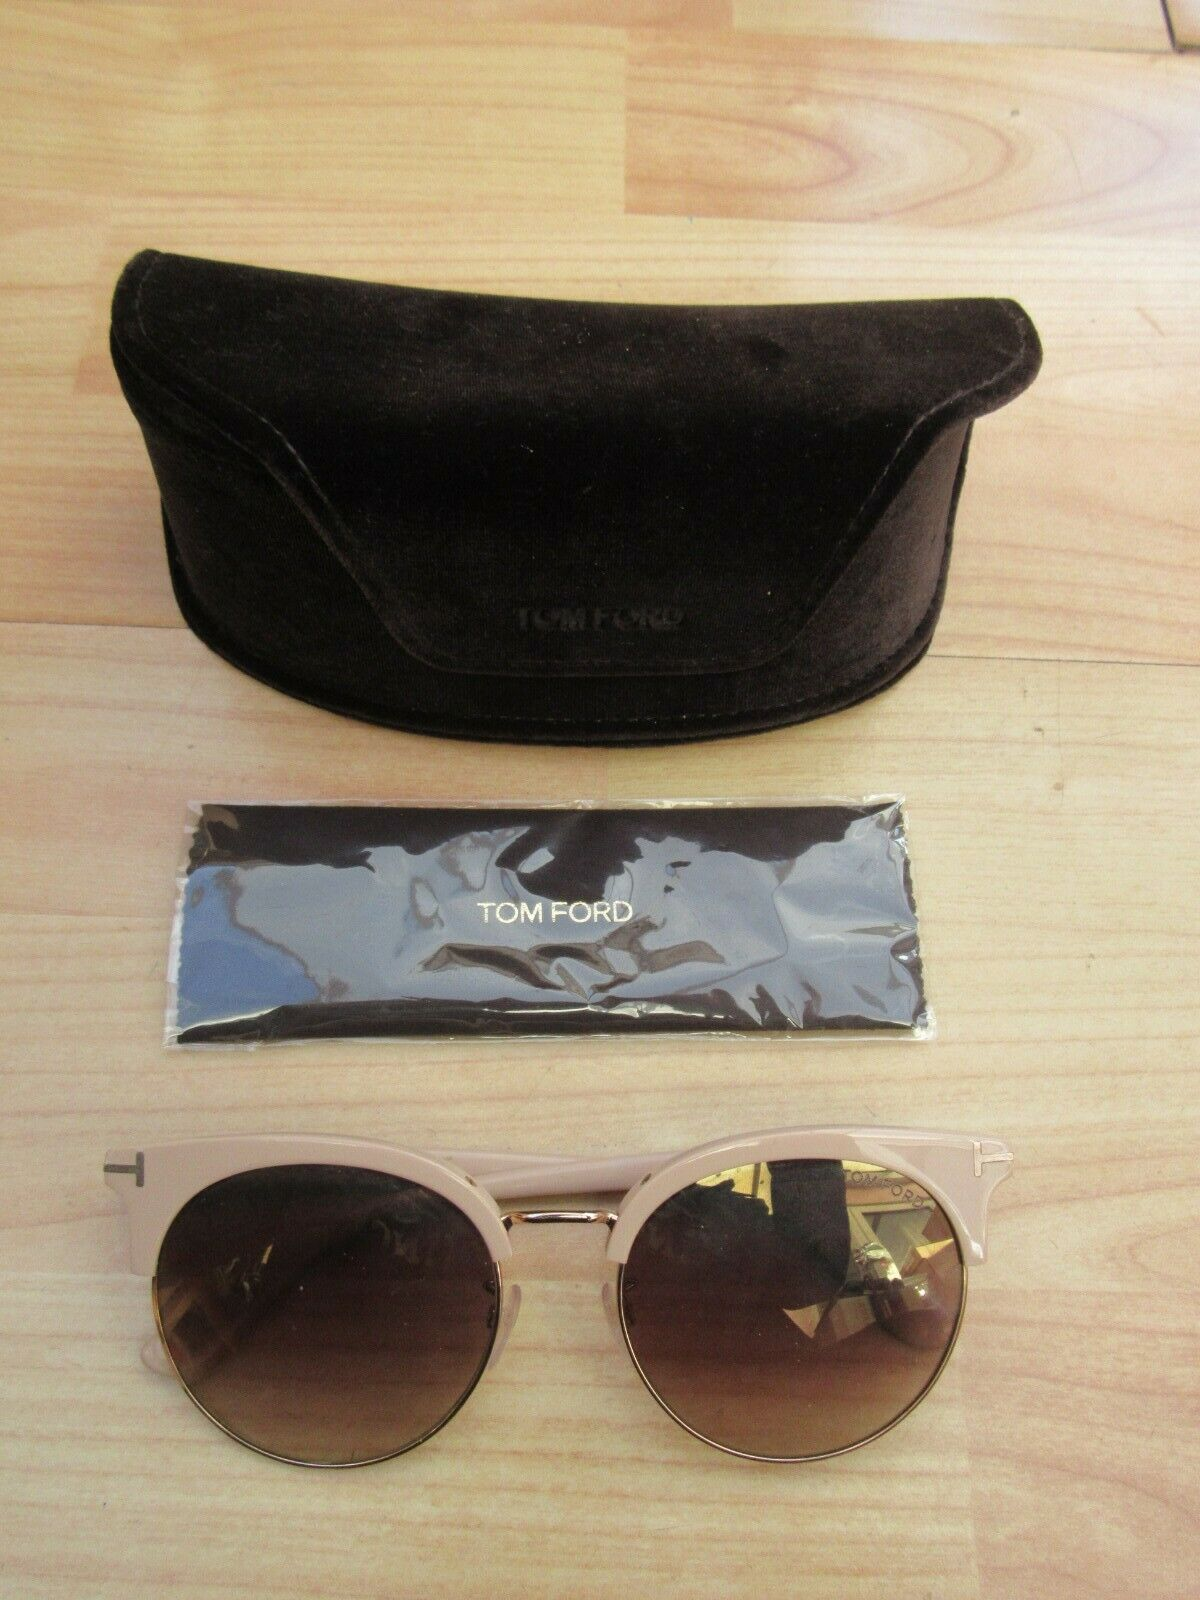 100% Genuine Tom Ford Sunglasses - Used w case - Good Condition